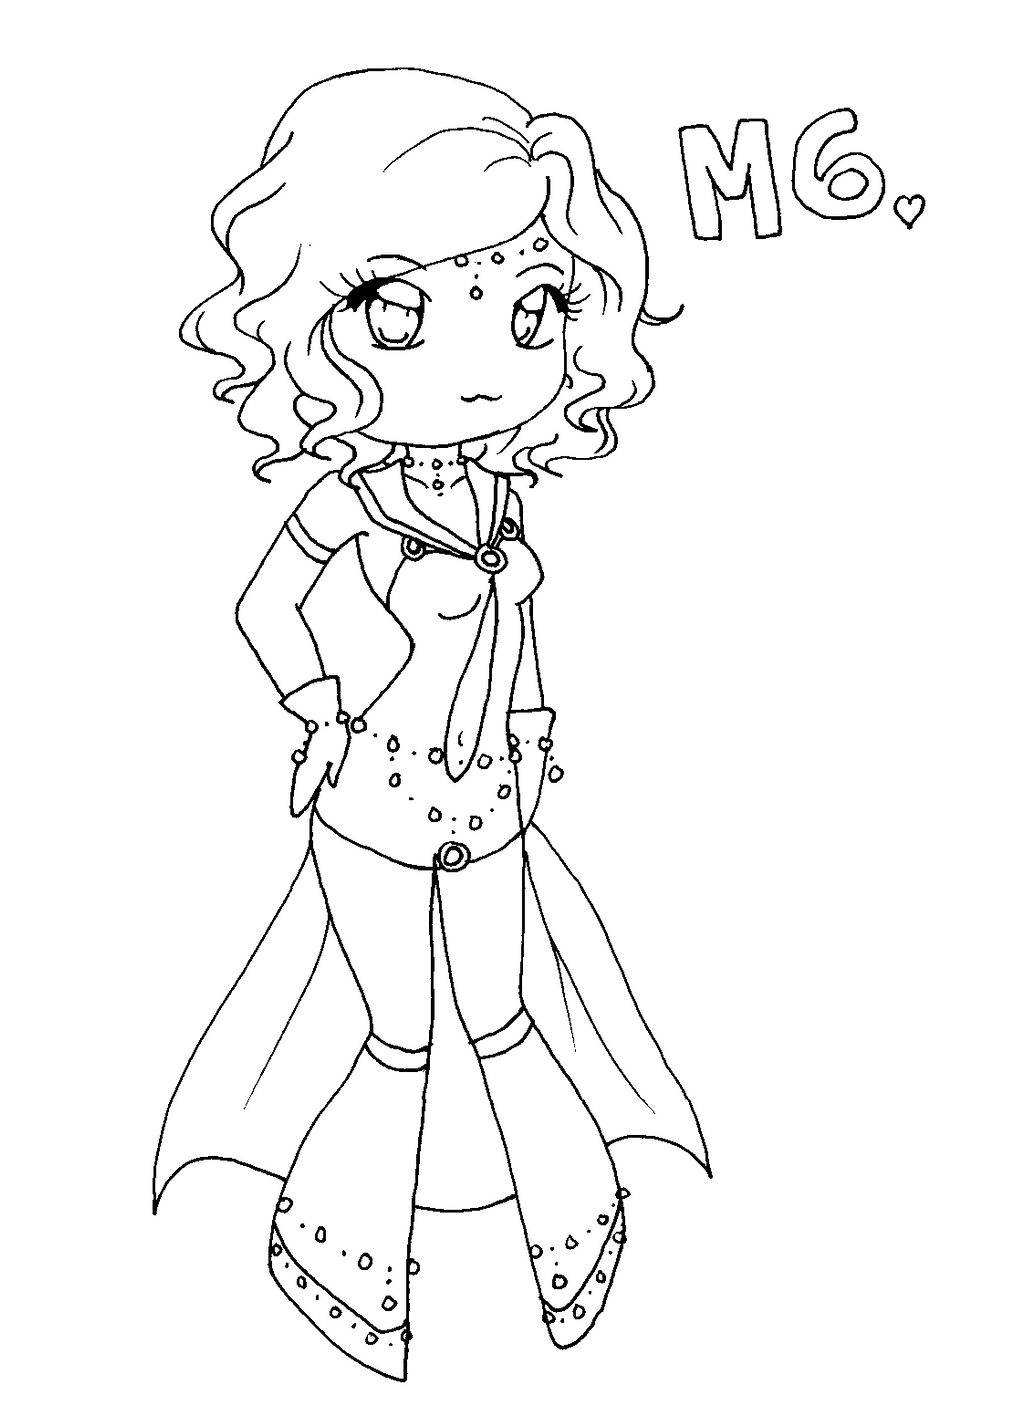 Chibi messier 6 coloring page by pandanalove on deviantart for Cute chibi coloring pages